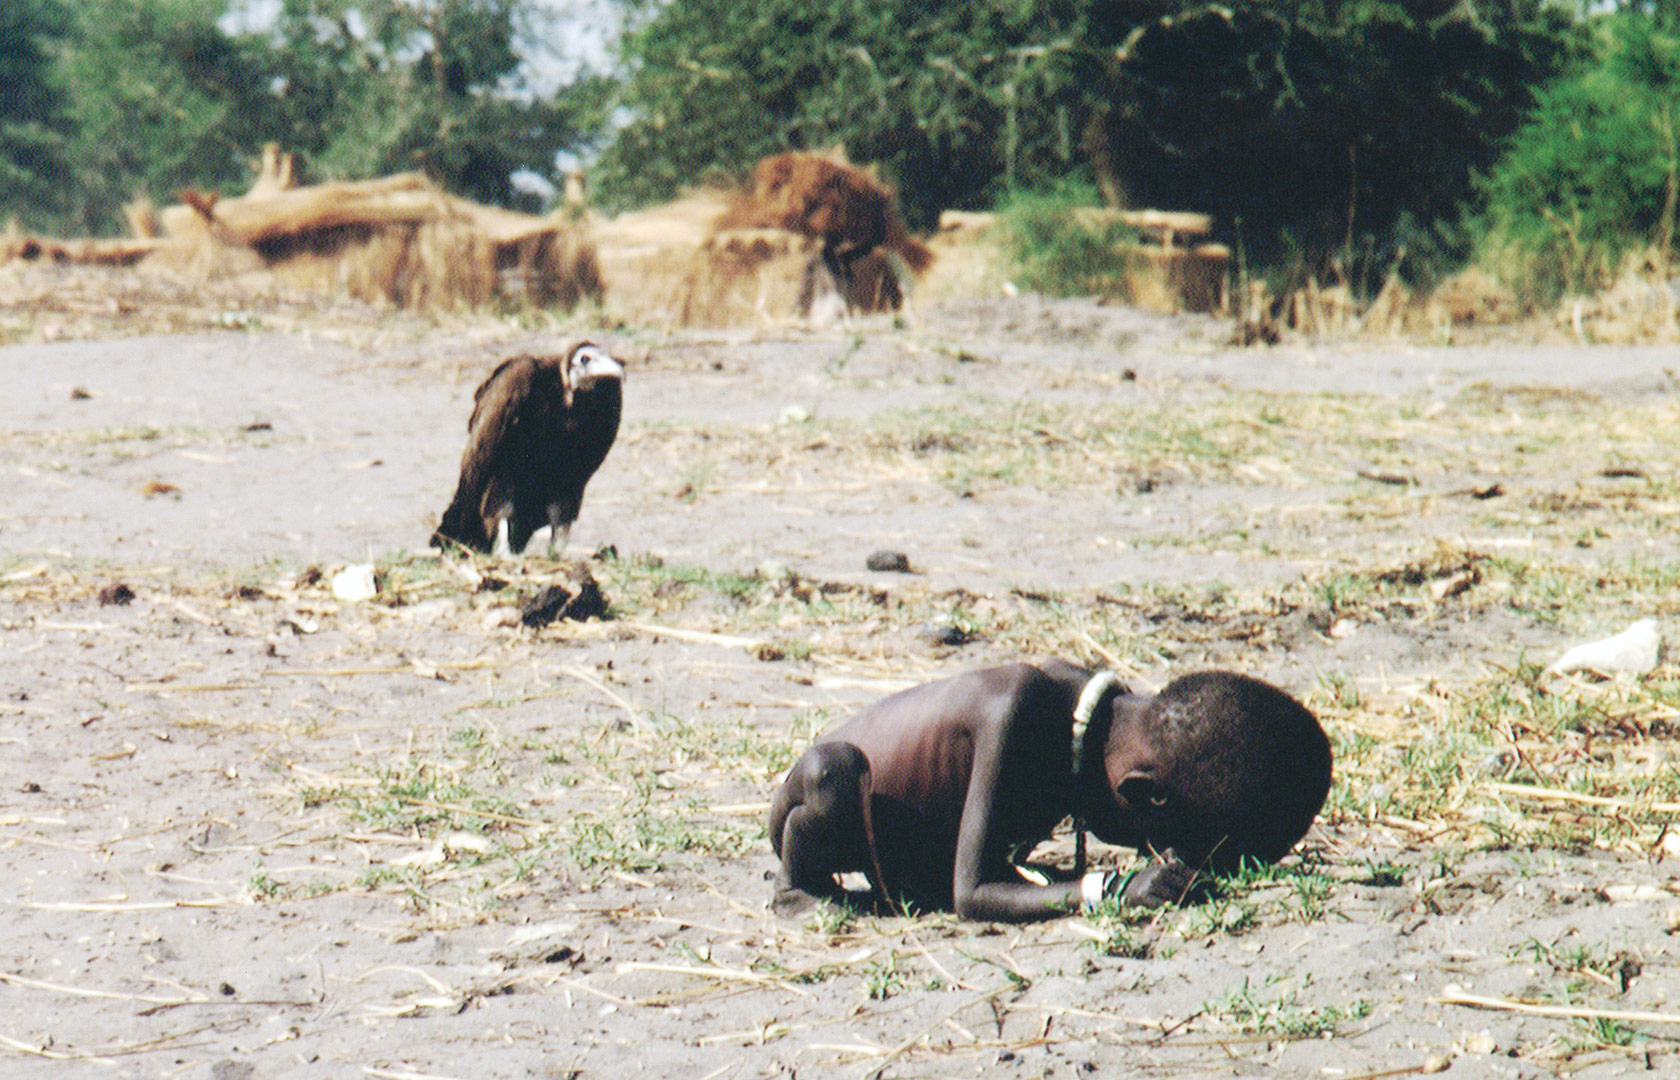 Starving child and a vulture